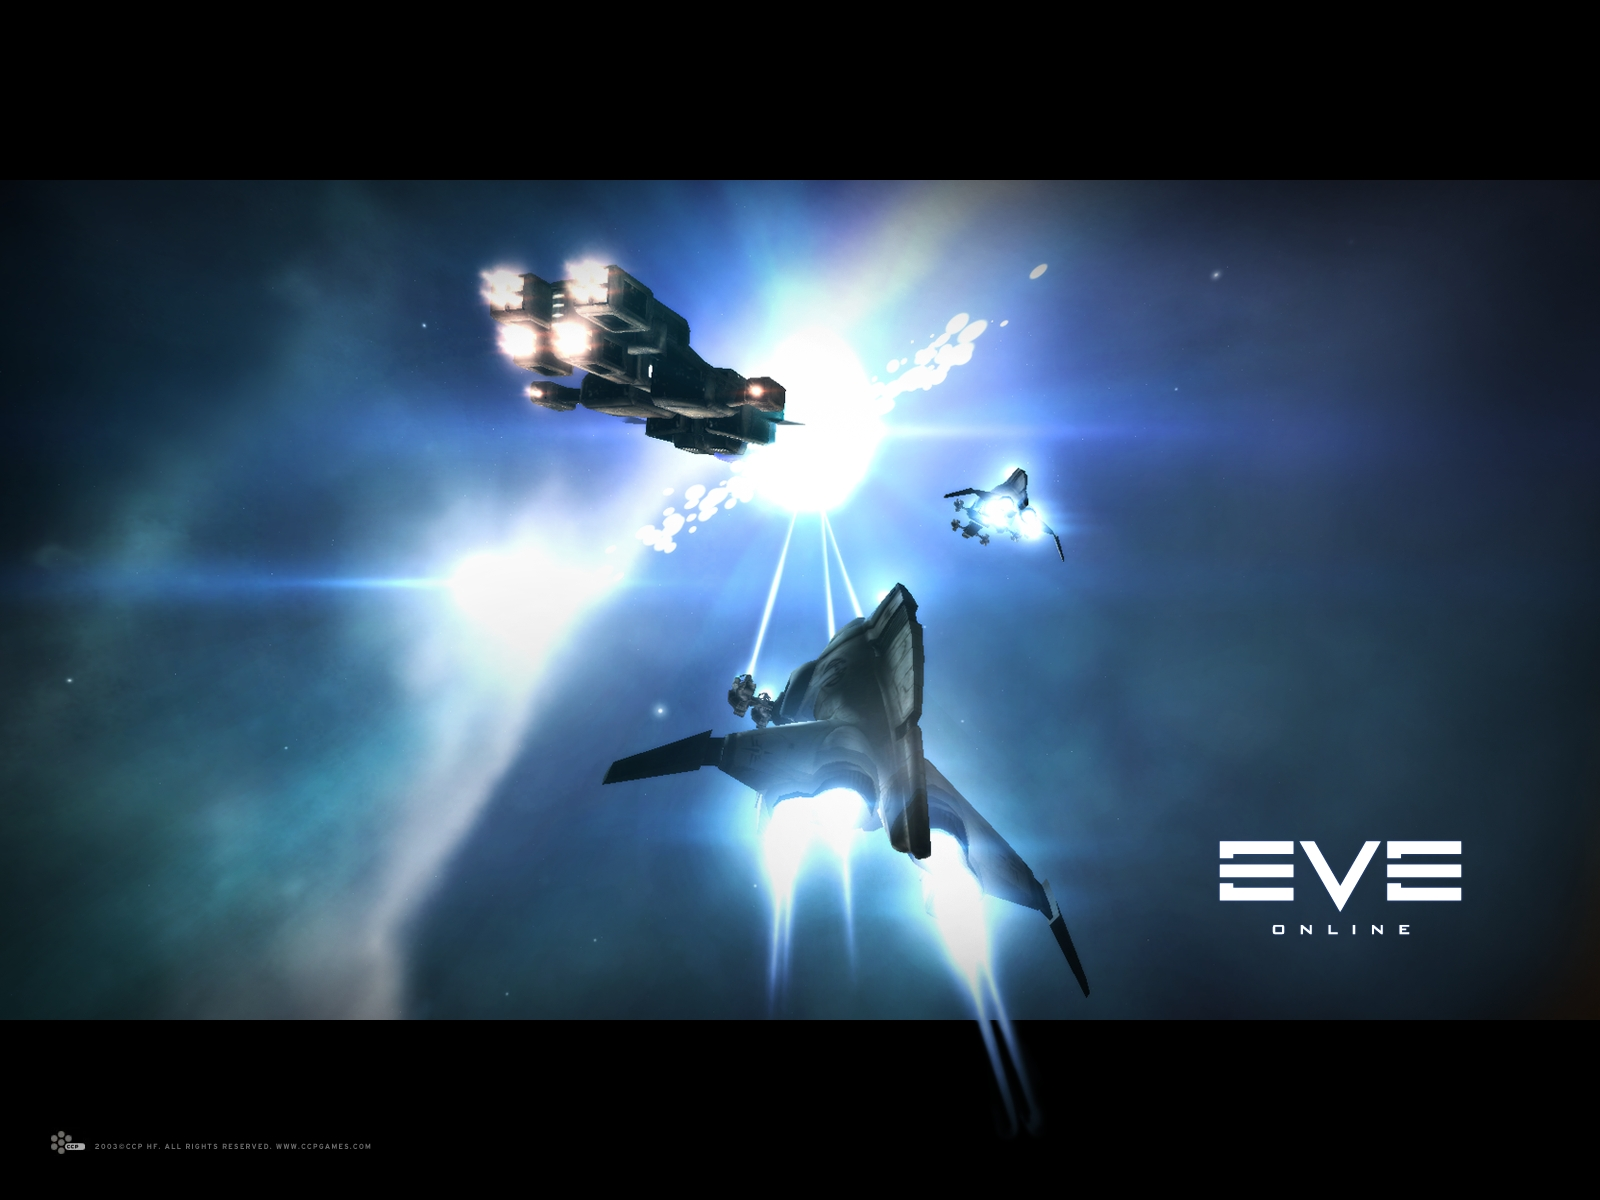 1600x1200 EVE online desktop wallpapers and stock photos